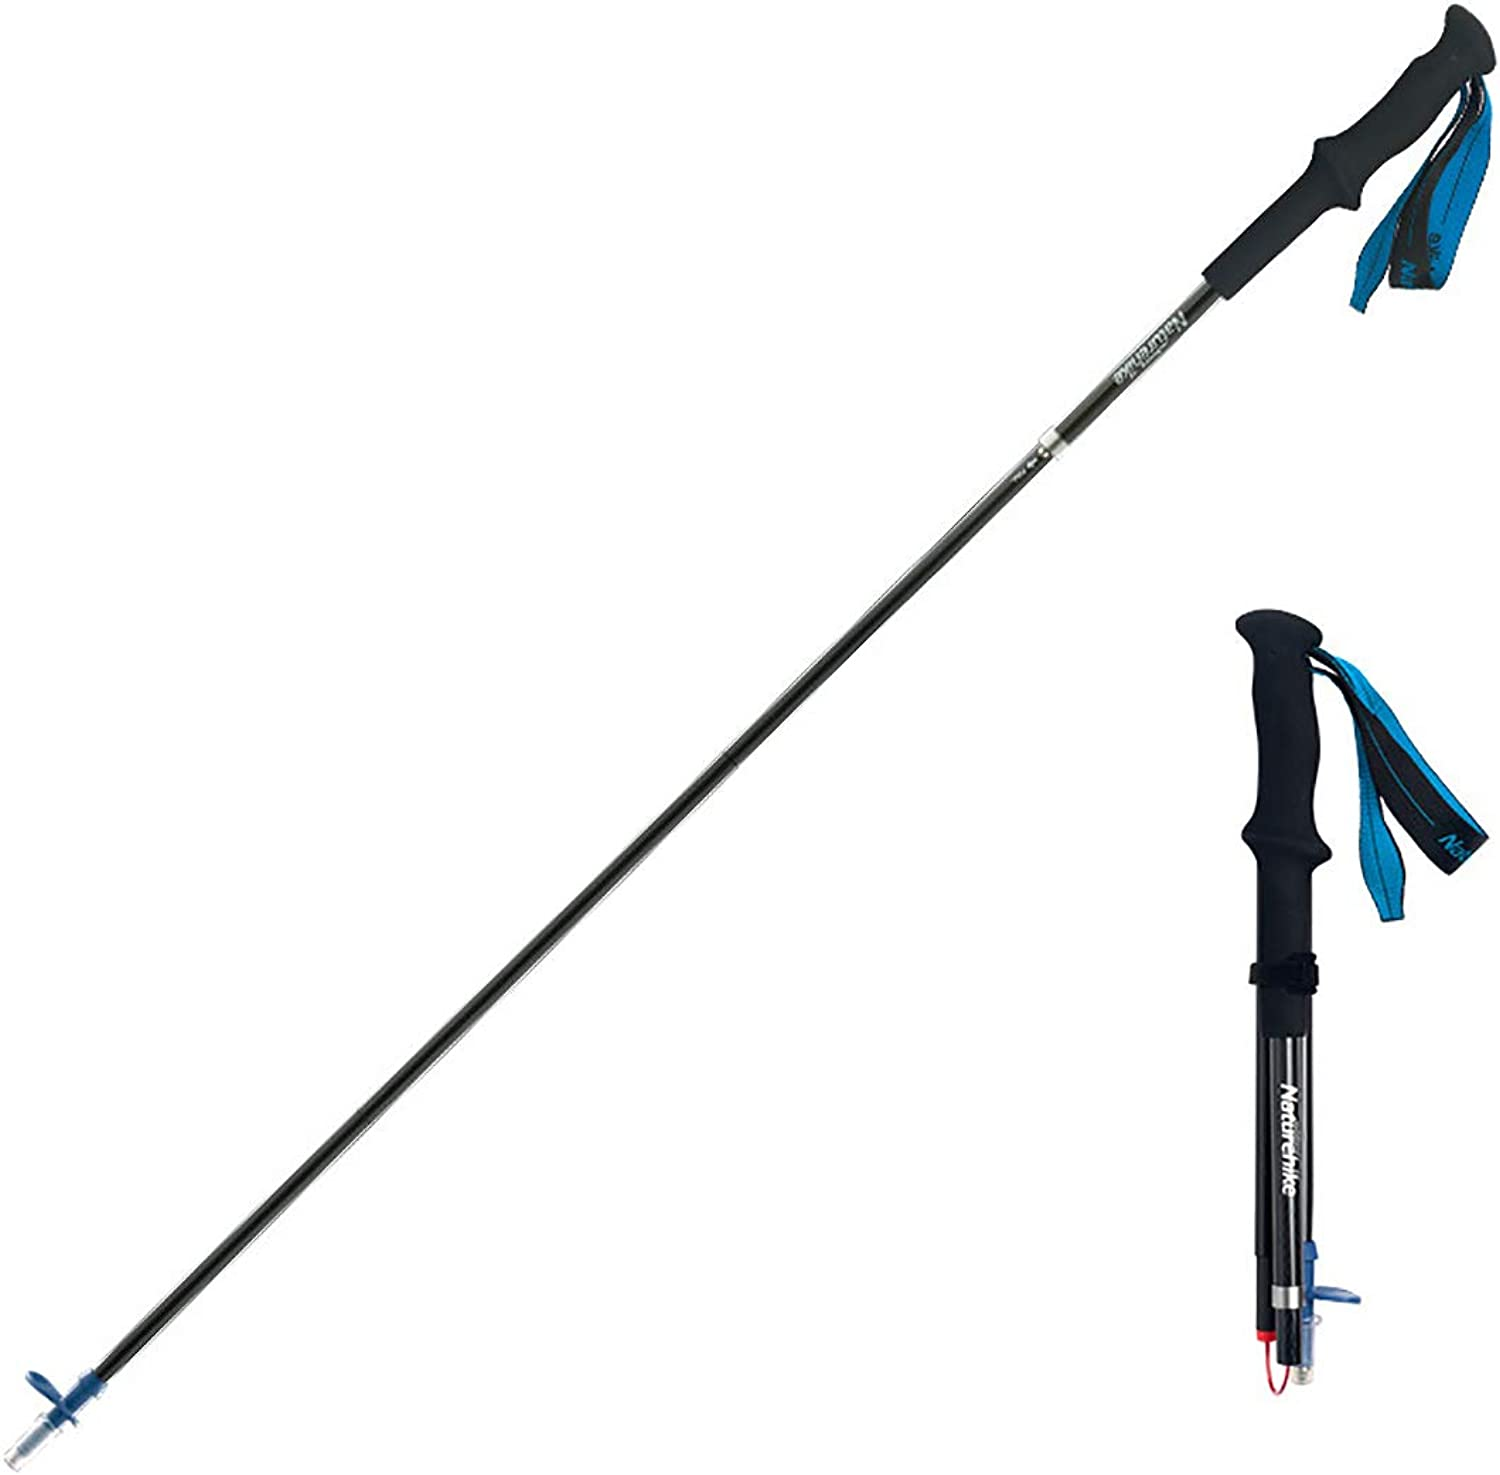 Trekking Pole Carbon Fiber Material Ultra-Light Four-Section Folding Telescopic Convenience Can Be Used As A Cross-Country Walking Stick